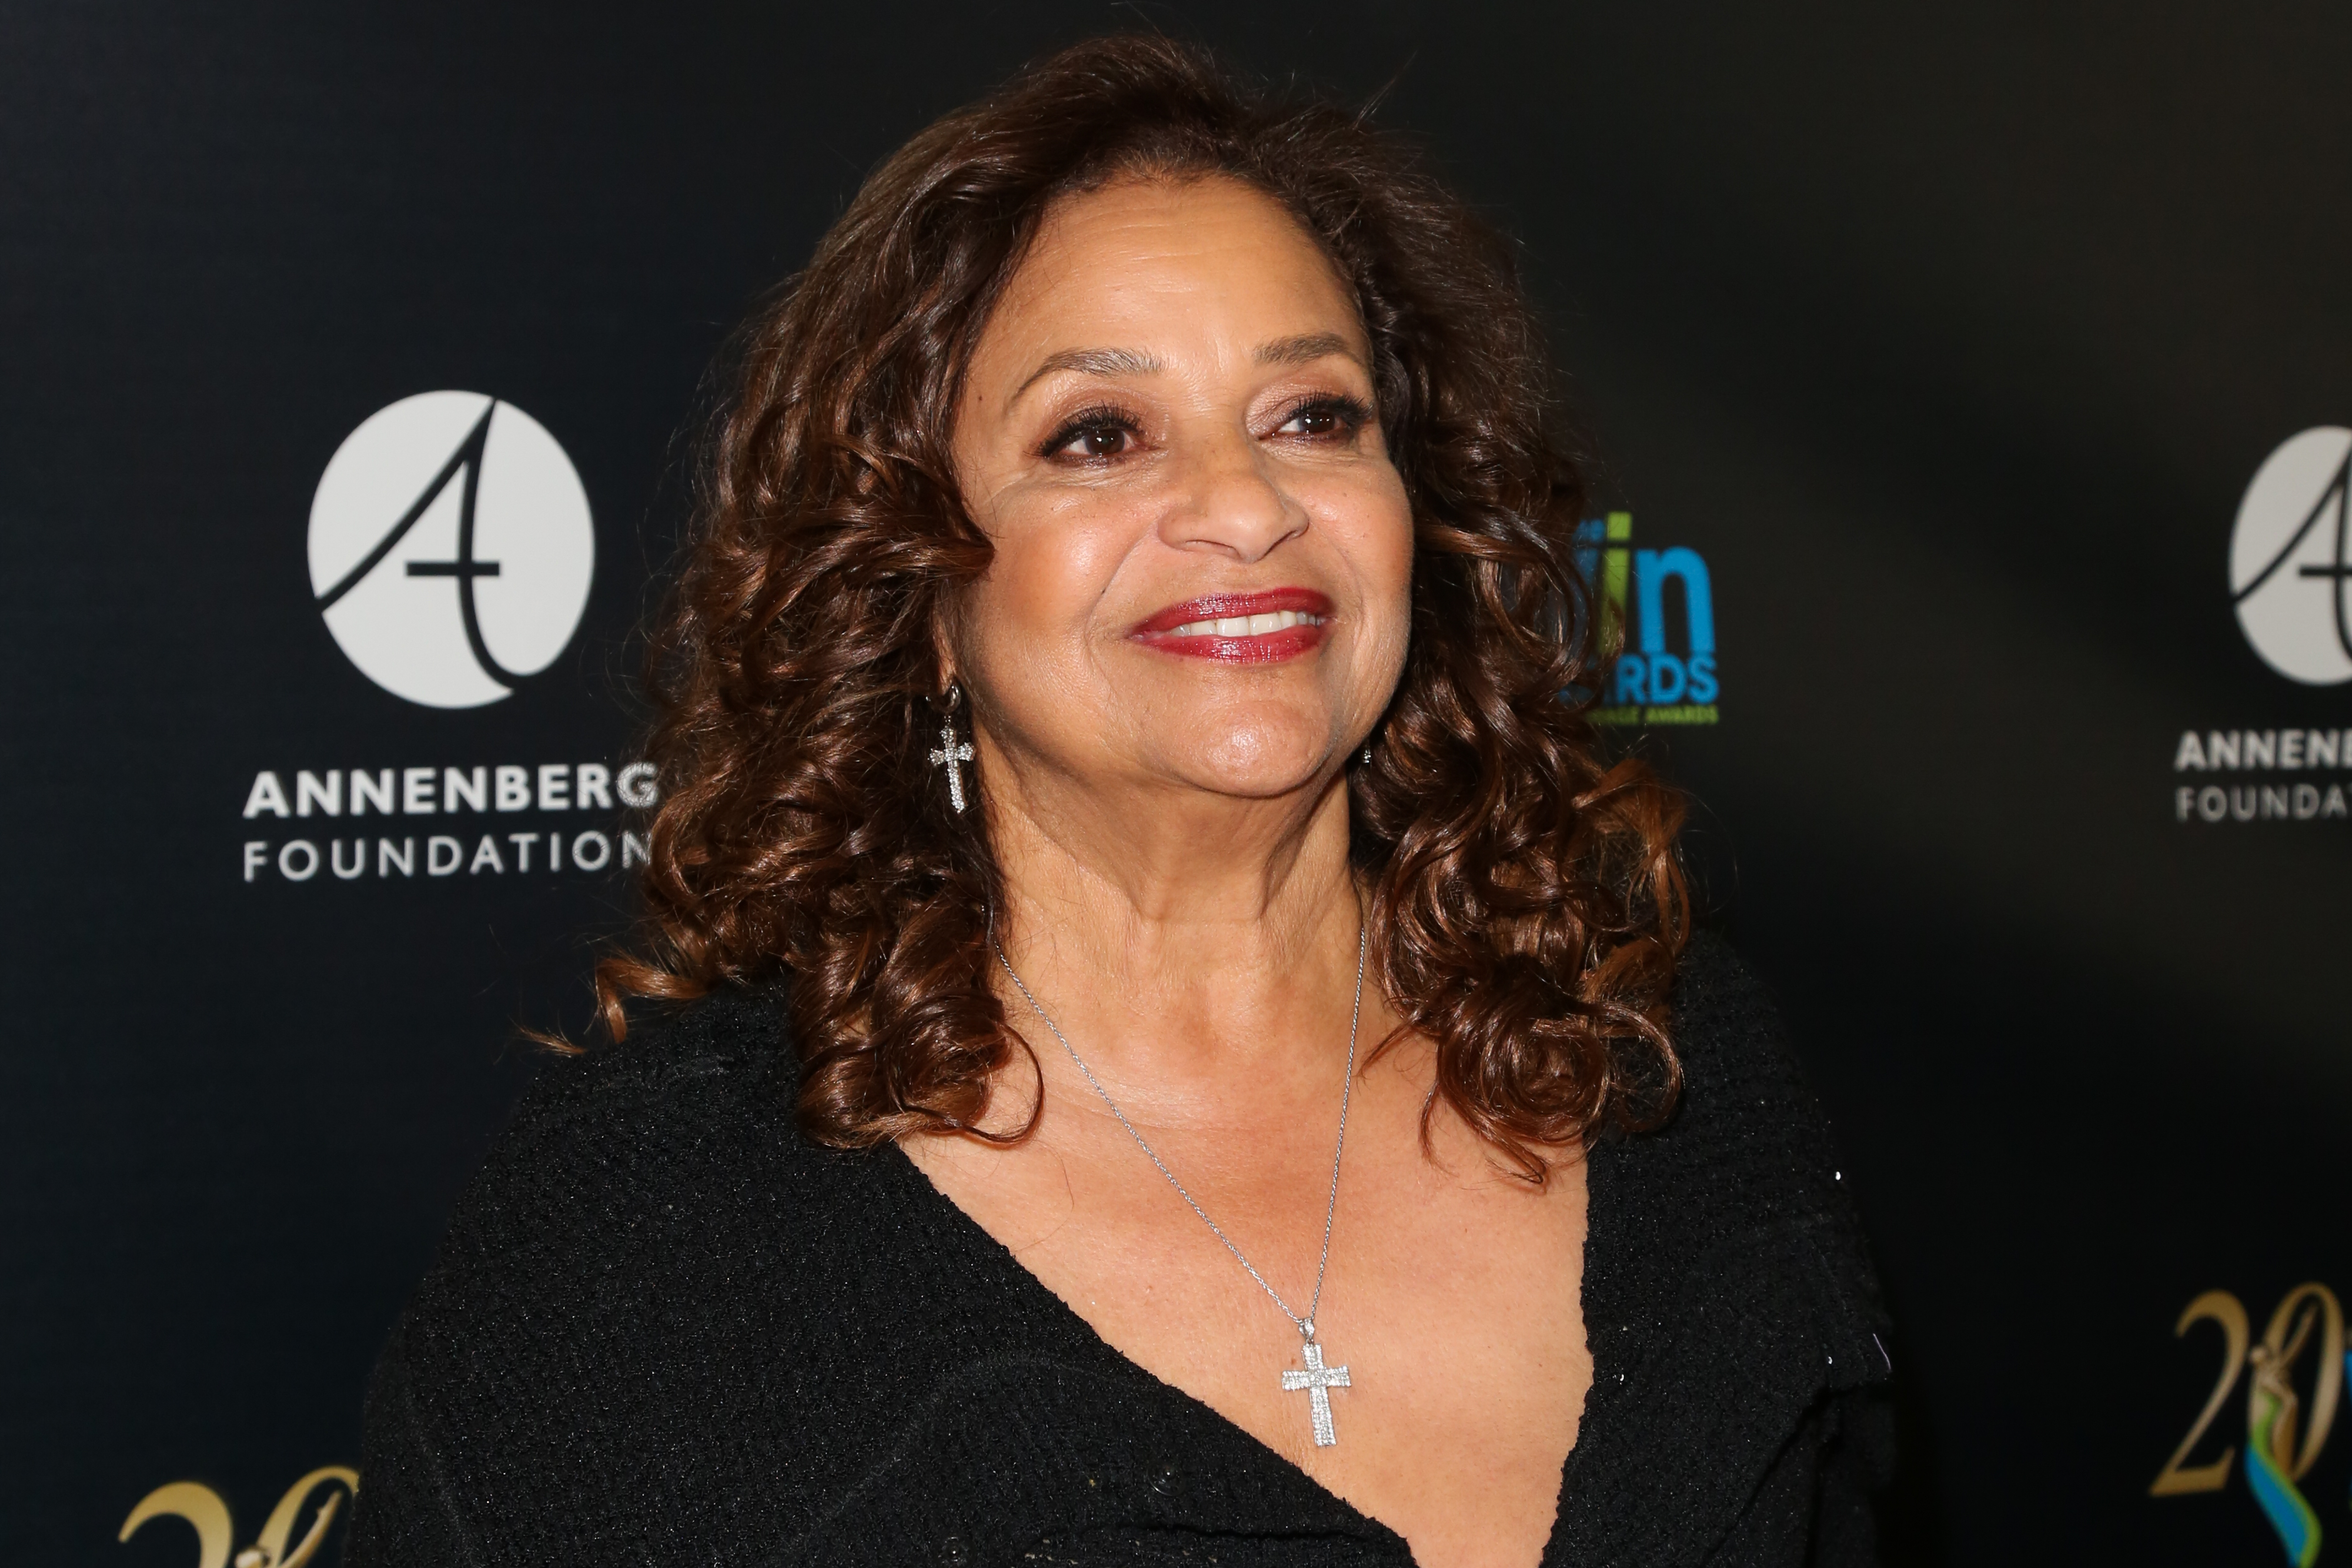 Dancing with Debbie Allen and other ways celebrities are encouraging self-distanced wellness